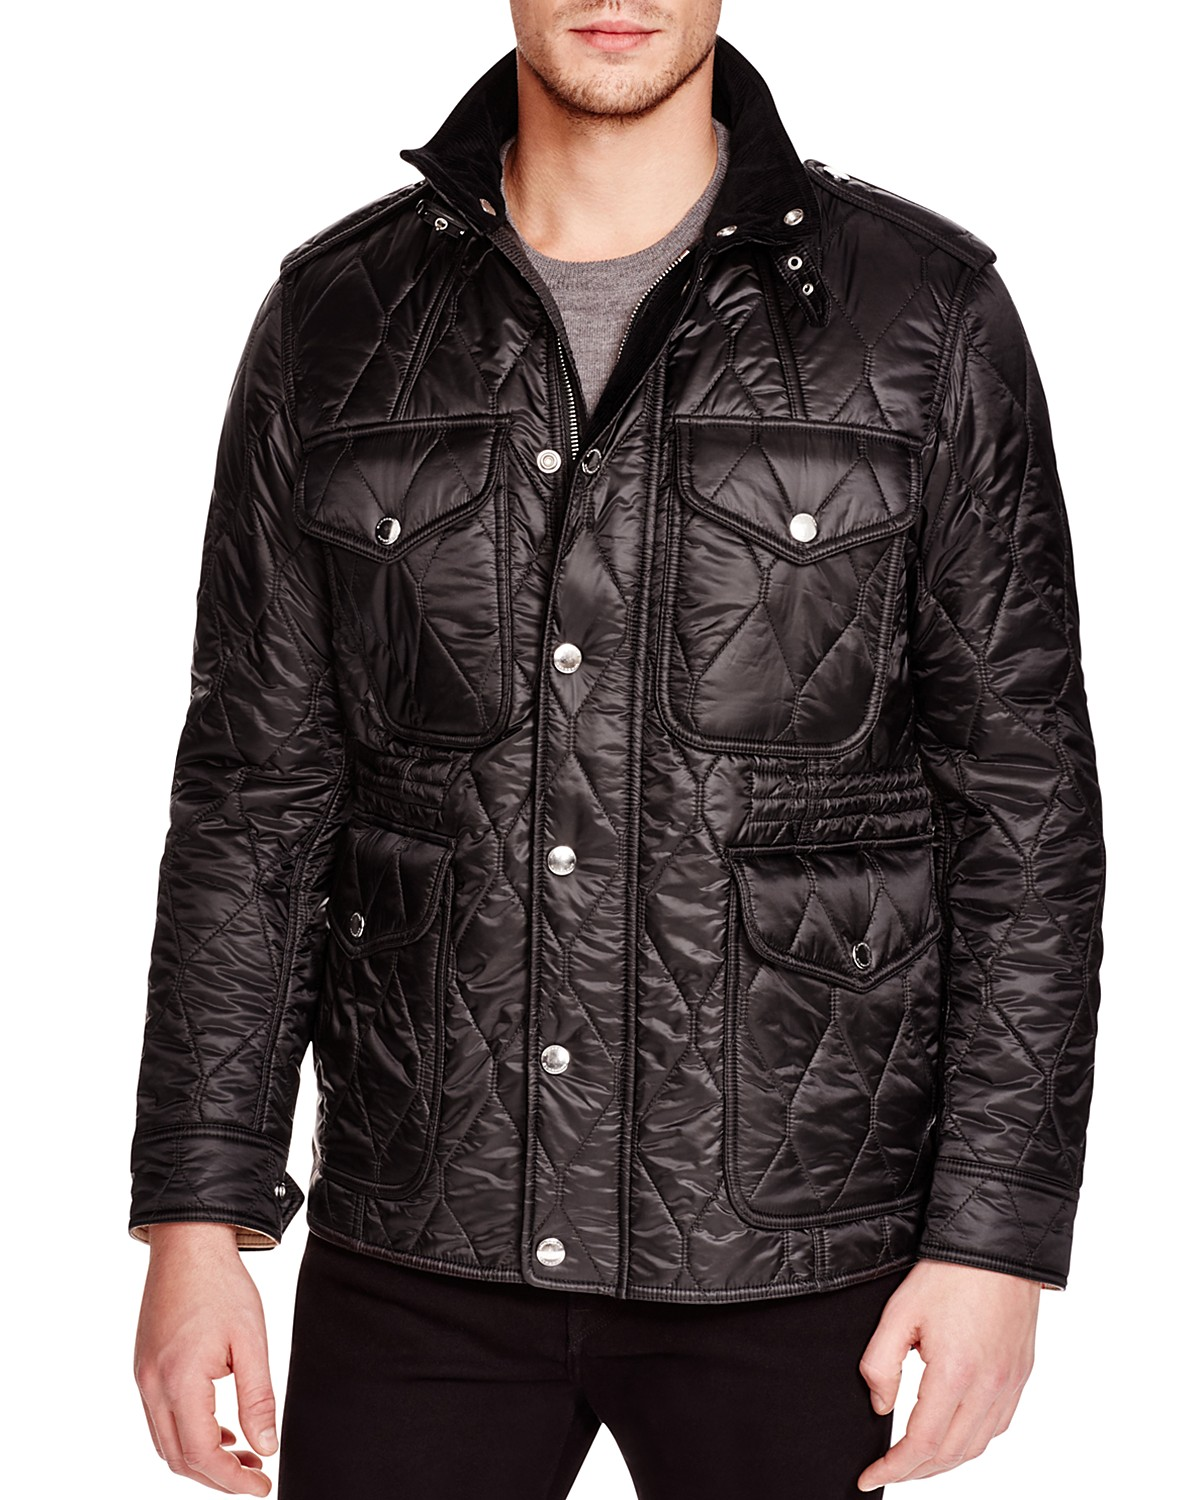 p jackets quilted ladies mens black womens burberry lrg quilt jacket au